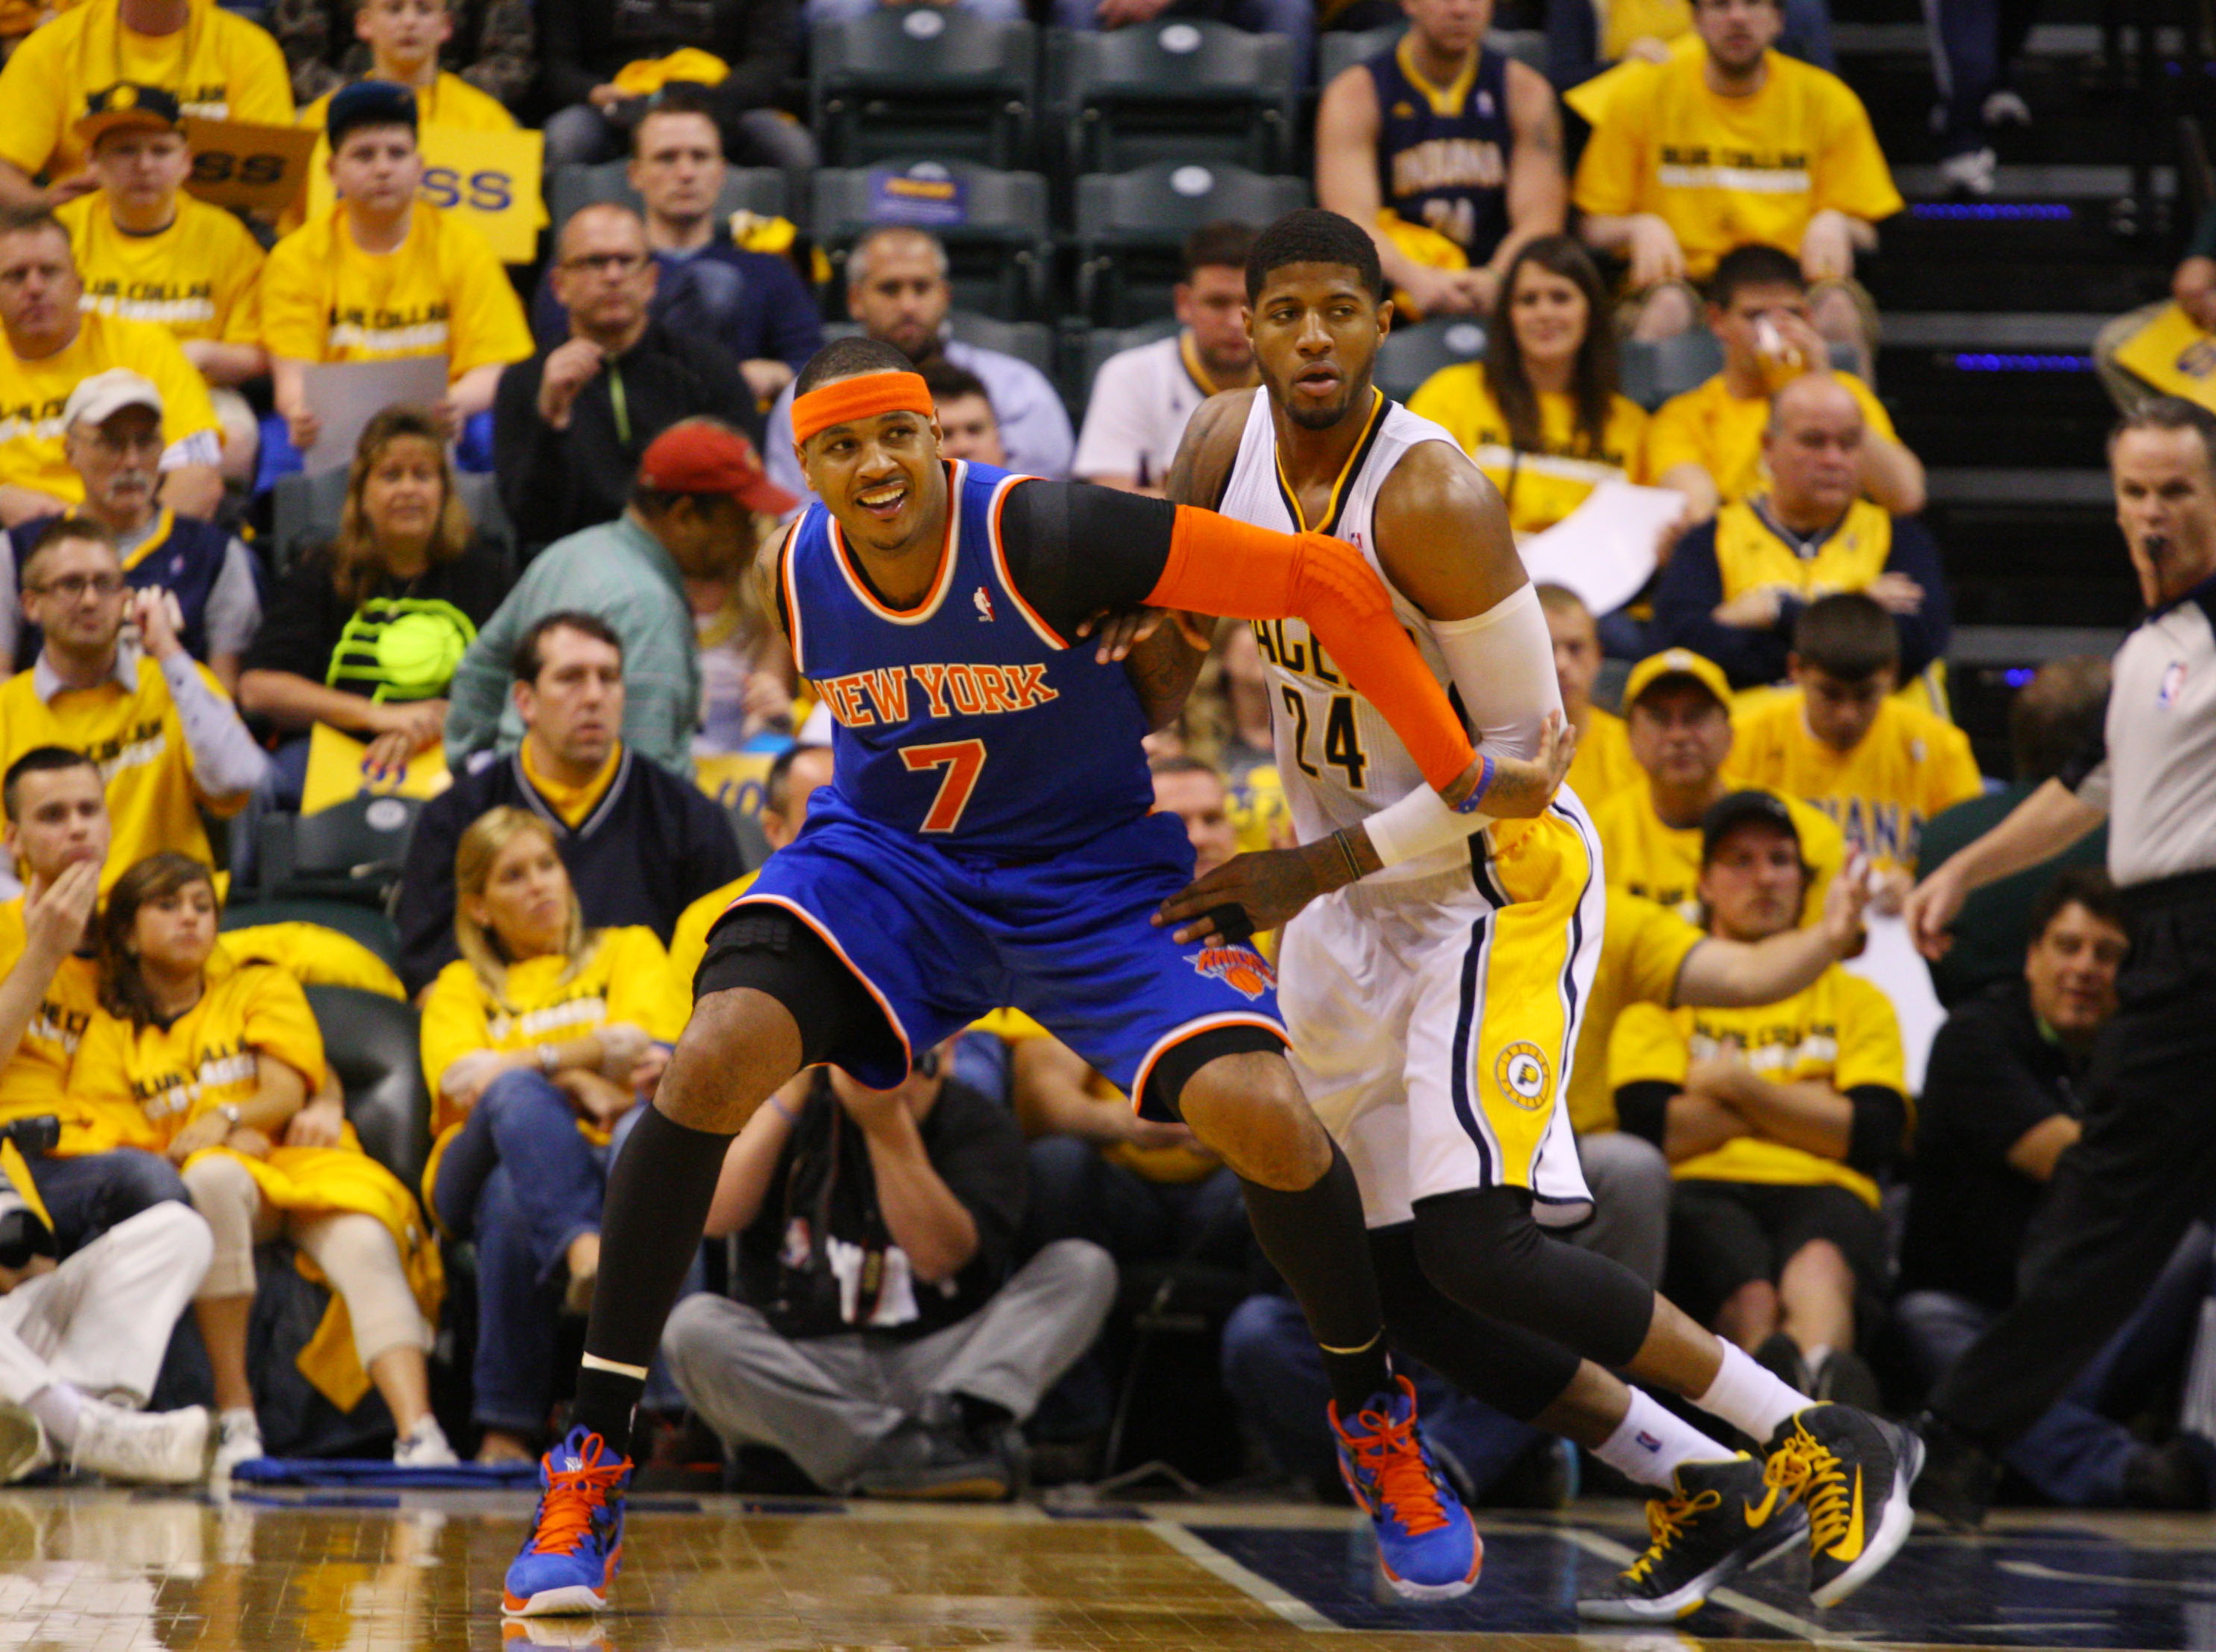 Knicks vs. Pacers Game 4, NBA Playoffs 2013: 93-82 victory gives Indiana 3-1 series lead